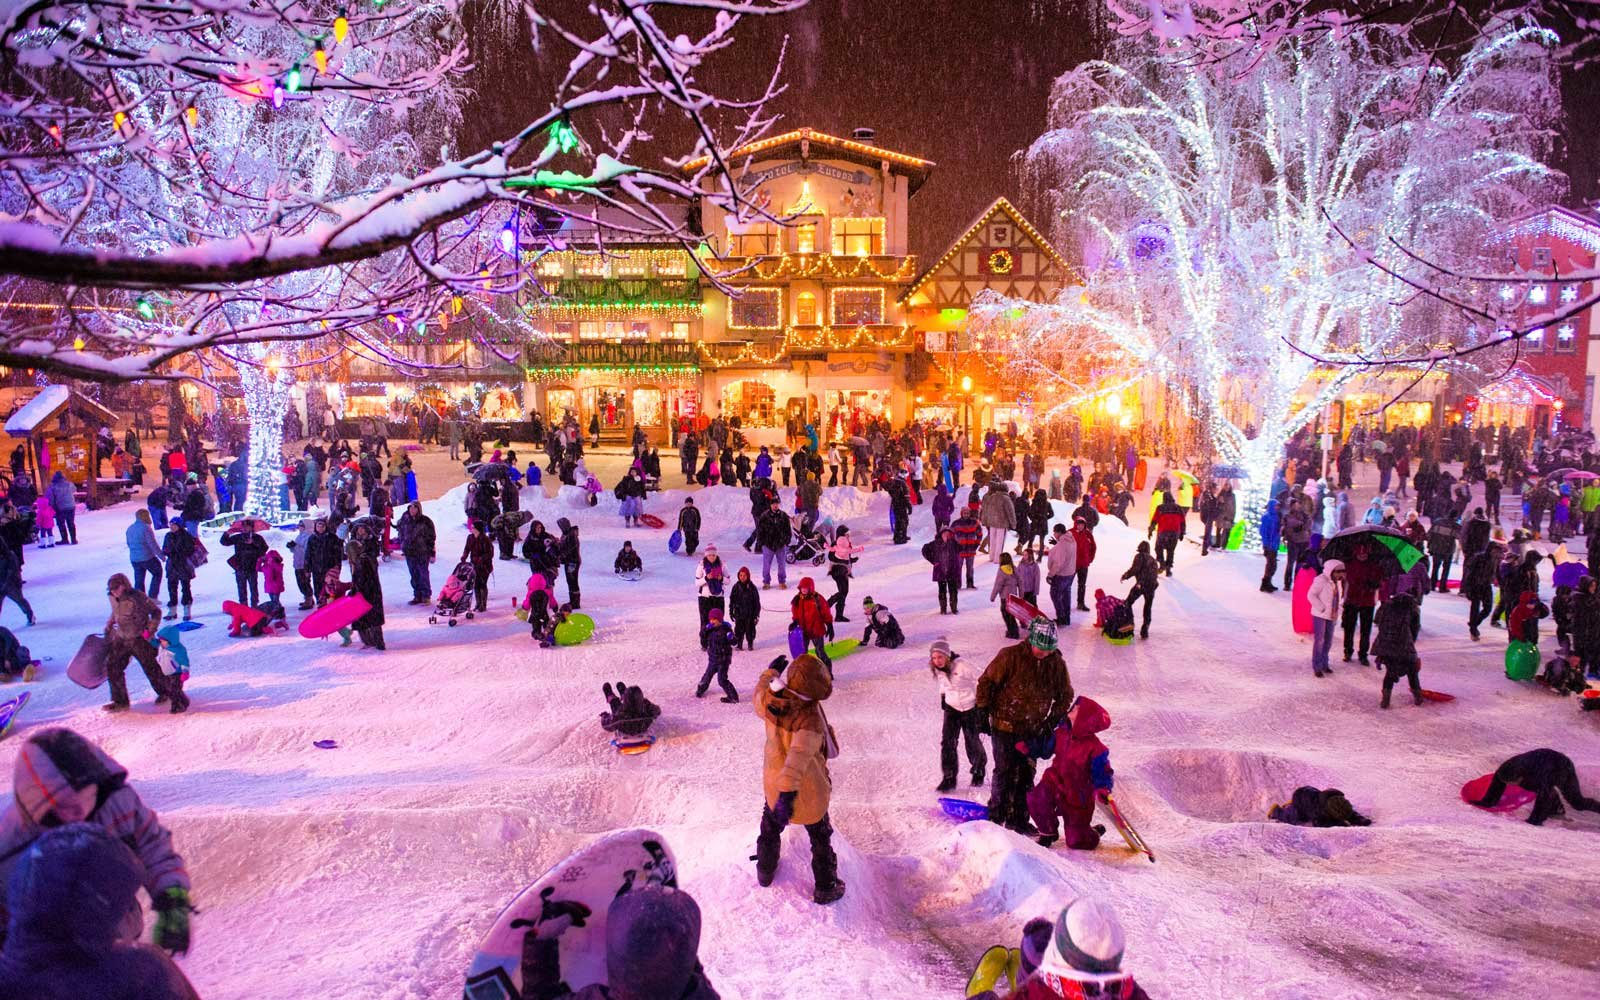 Bavarian Ice fest Leavenworth Washington